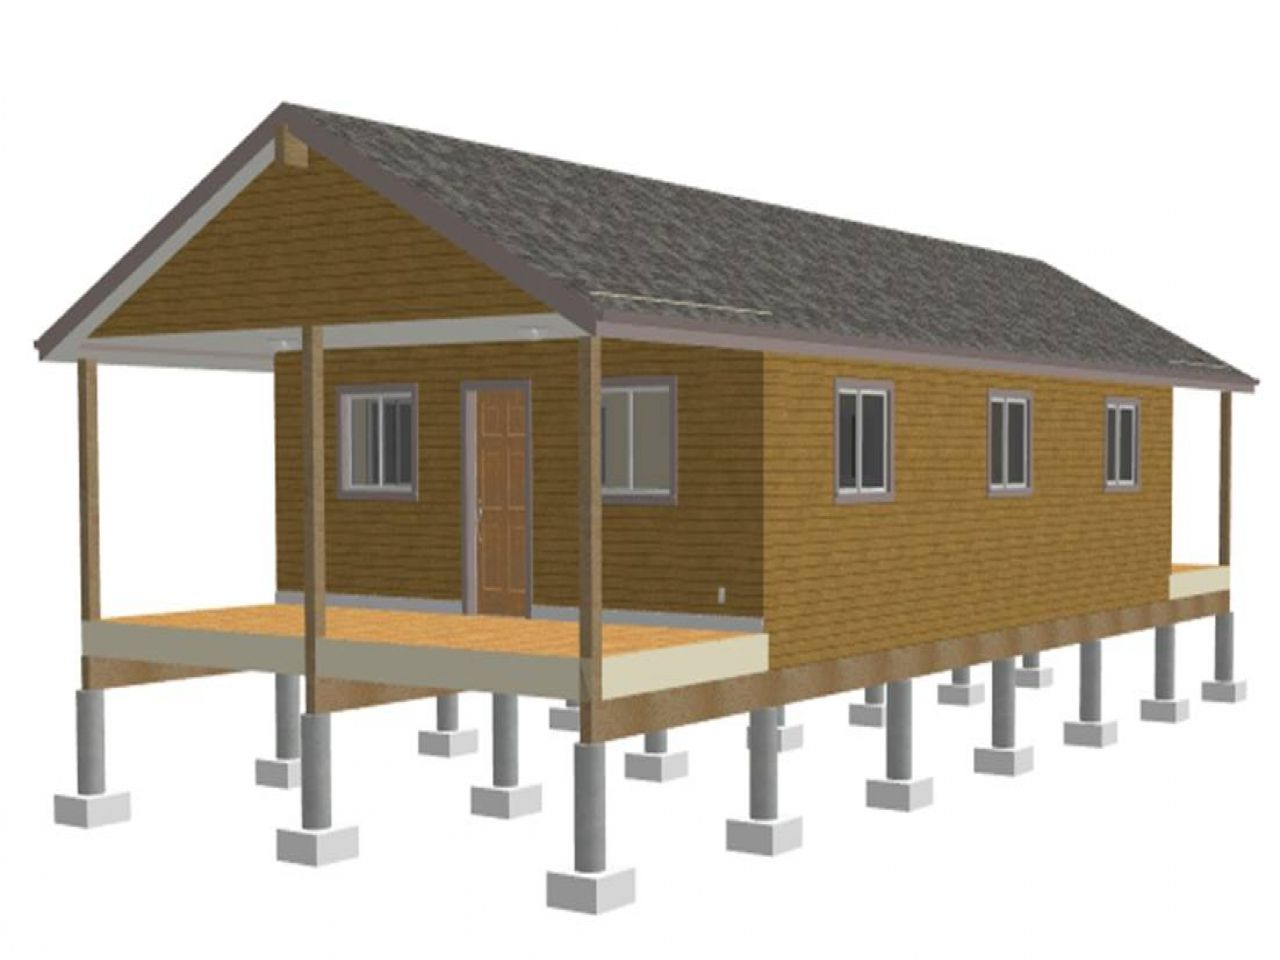 Cabin Plans Rustic One Room Small House Log Cabins Homes Story One Room Cabins Log Cabin Floor Plans Cabin Floor Plans